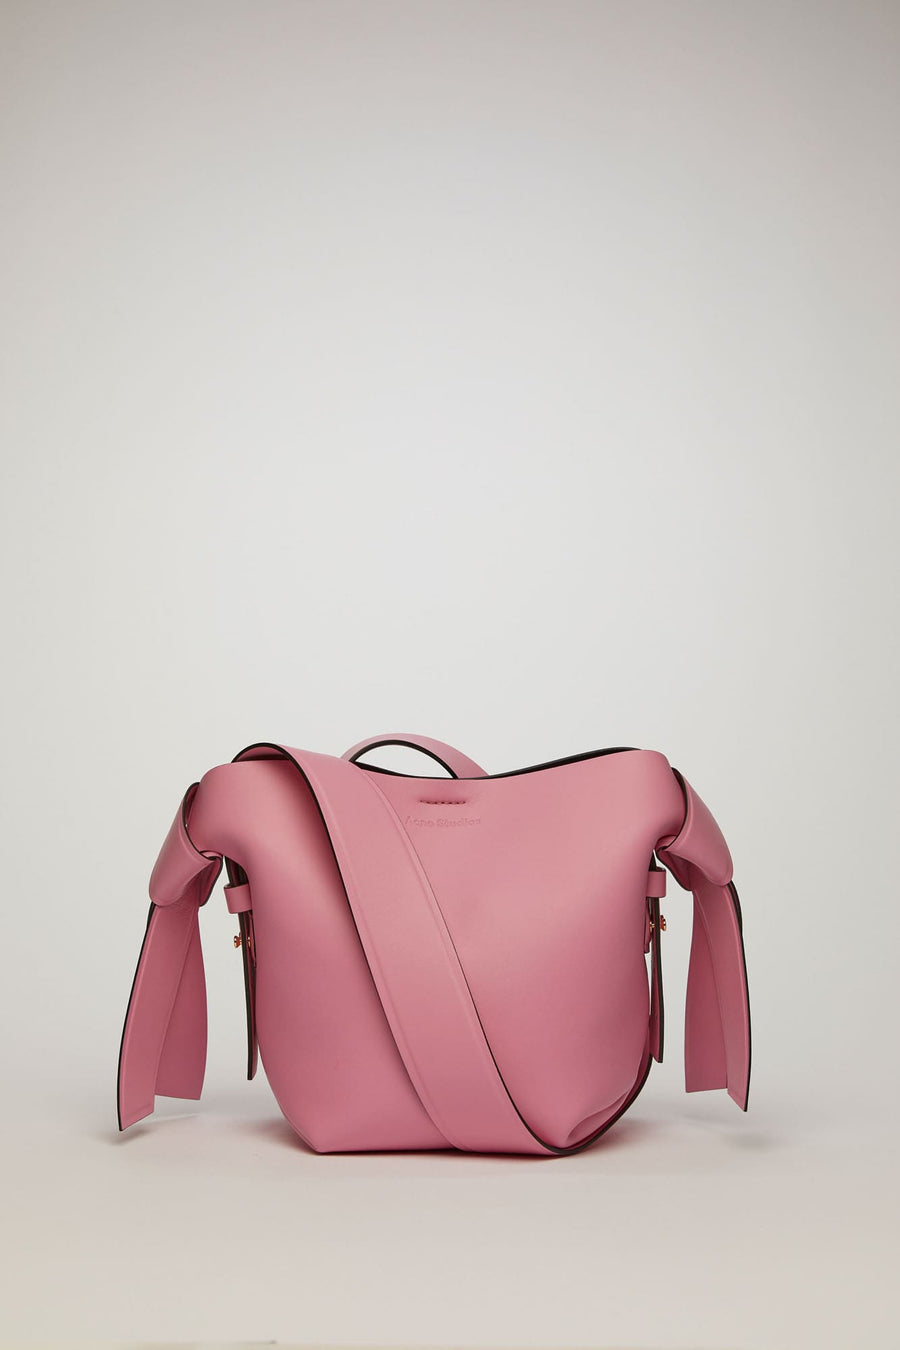 Musubi Mini Bag-pink/black